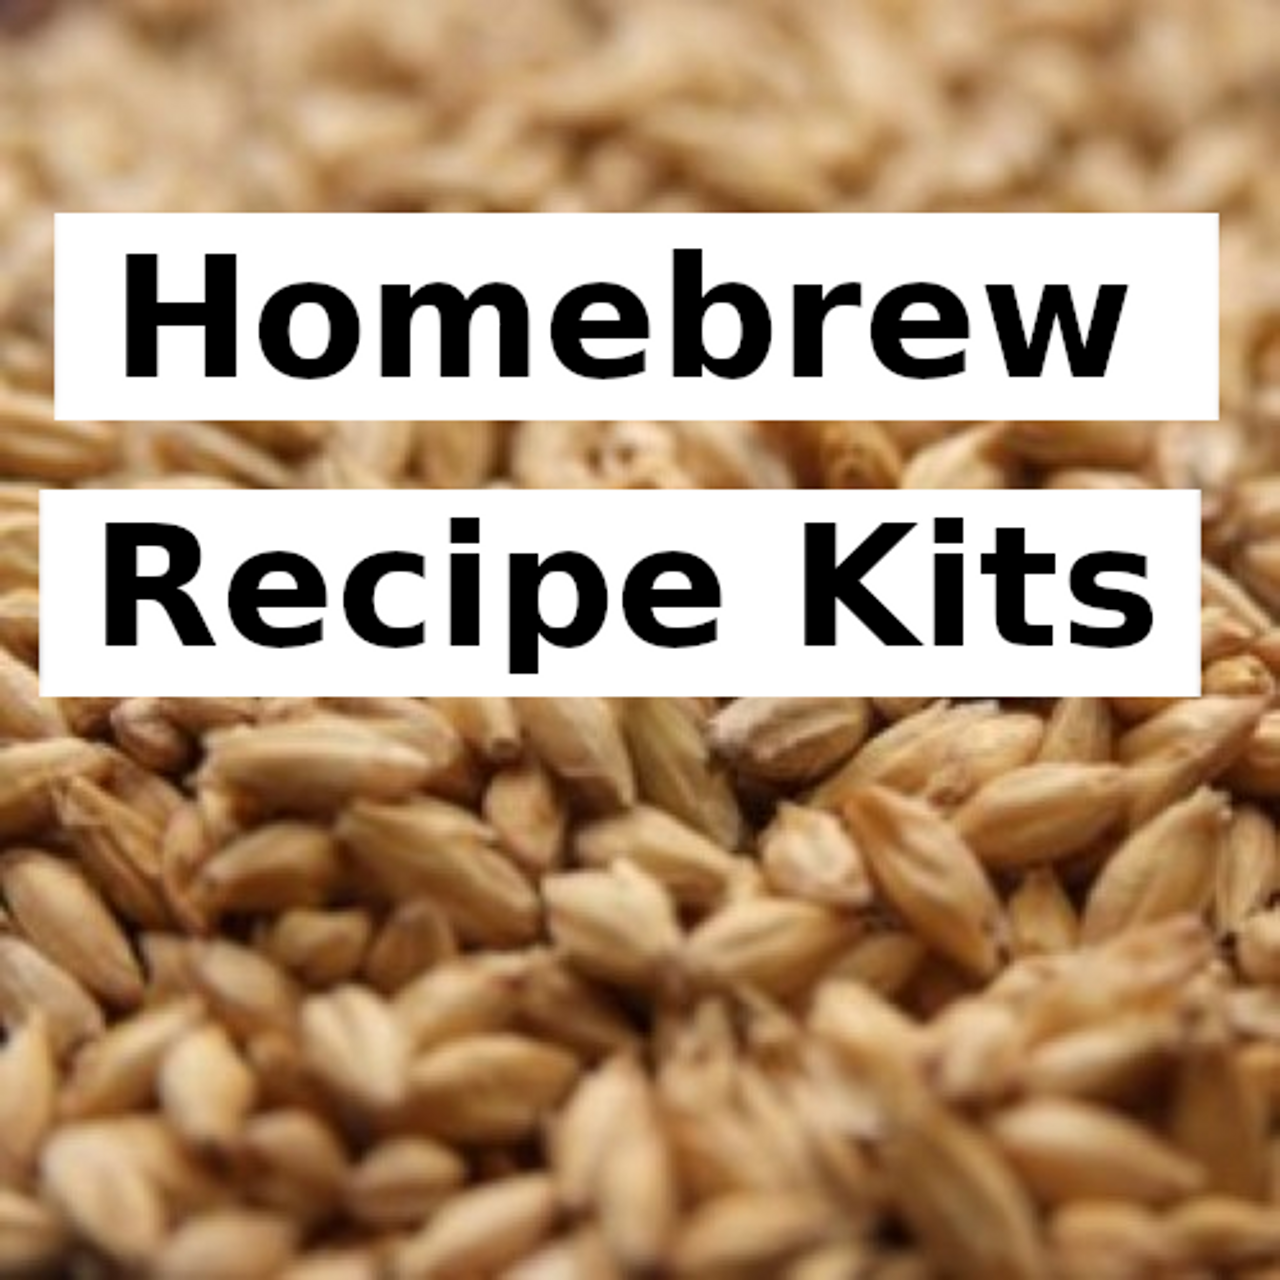 Homebrew Recipe Kits